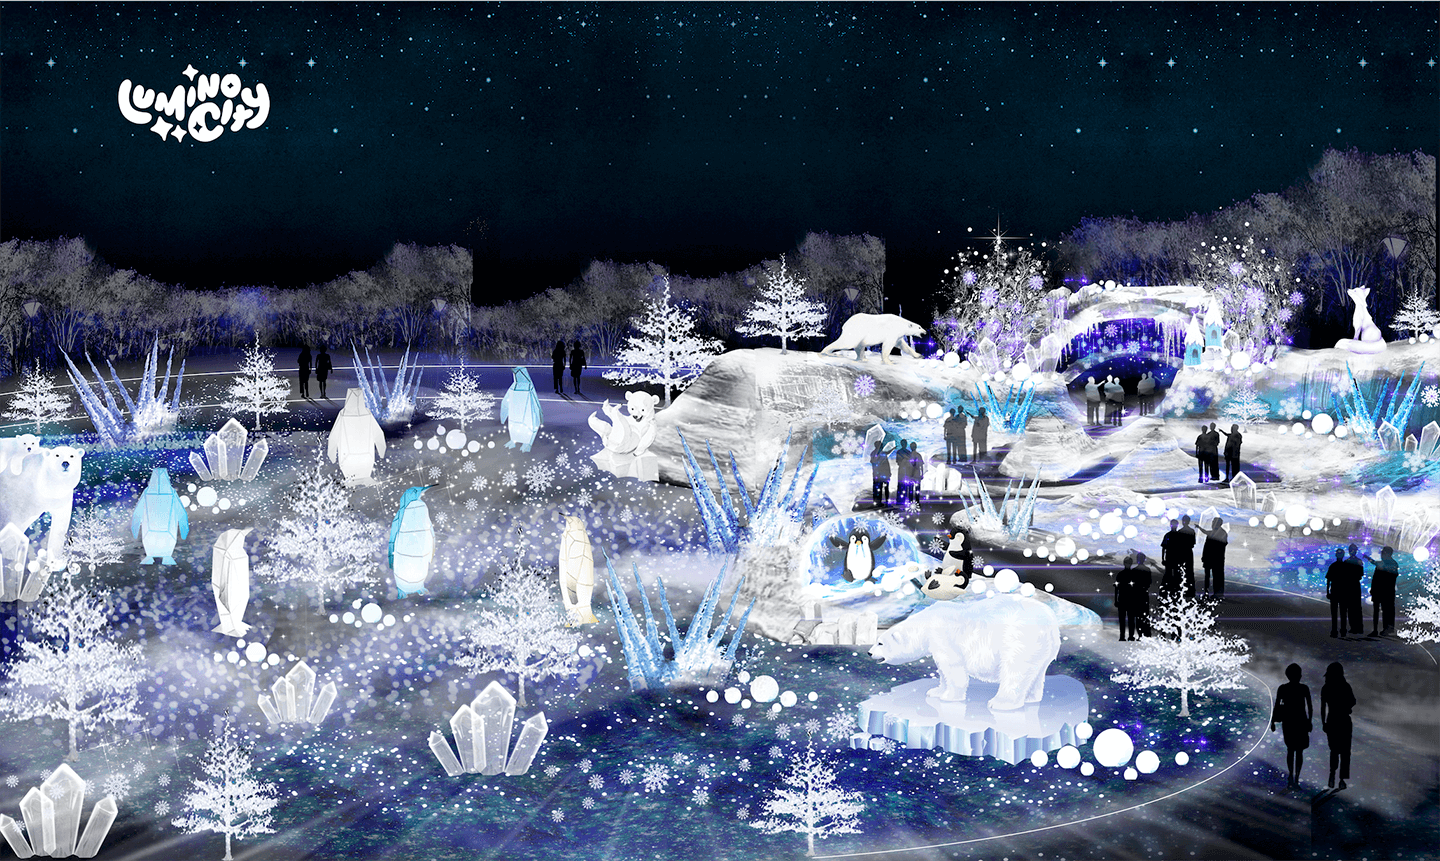 the-icey-valley-the-winter-fantasy-light-arts-luminocity-festival-rendered